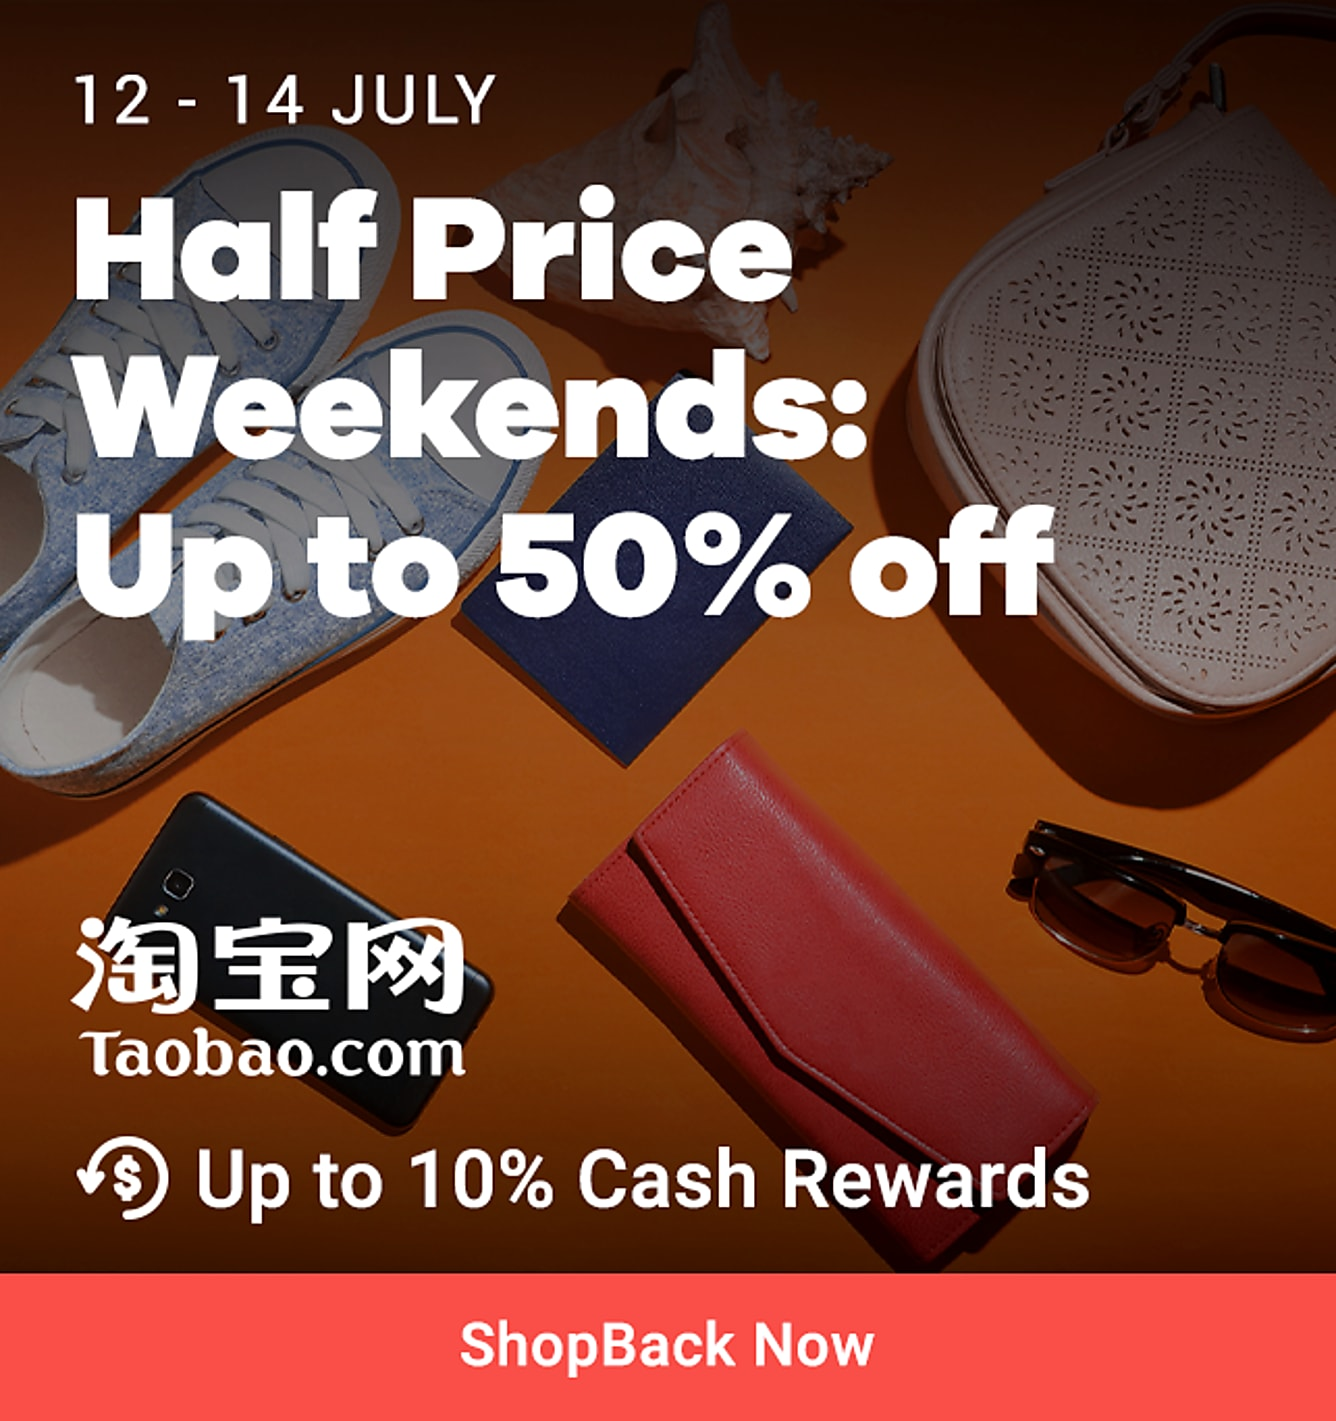 TAOBAO_SG_HALF_PRICE_WEEKEND_19JUL_21JUL19 up to 50% off